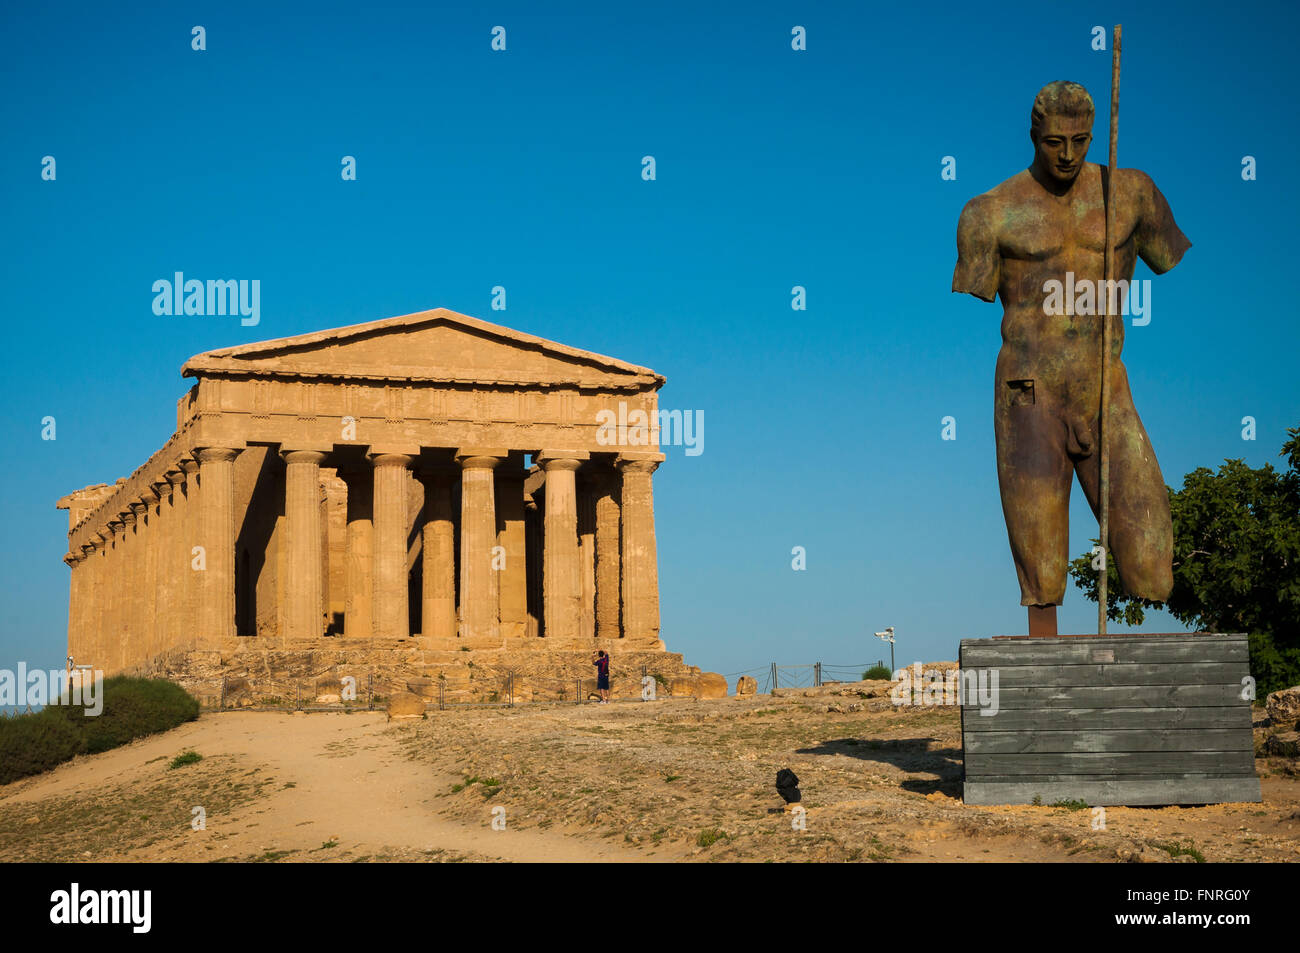 Daedalus, bronze sculpture by Igor Mitoraj. In the background the Temple of Concordia. Valley of the Temples. Agrigento. - Stock Image